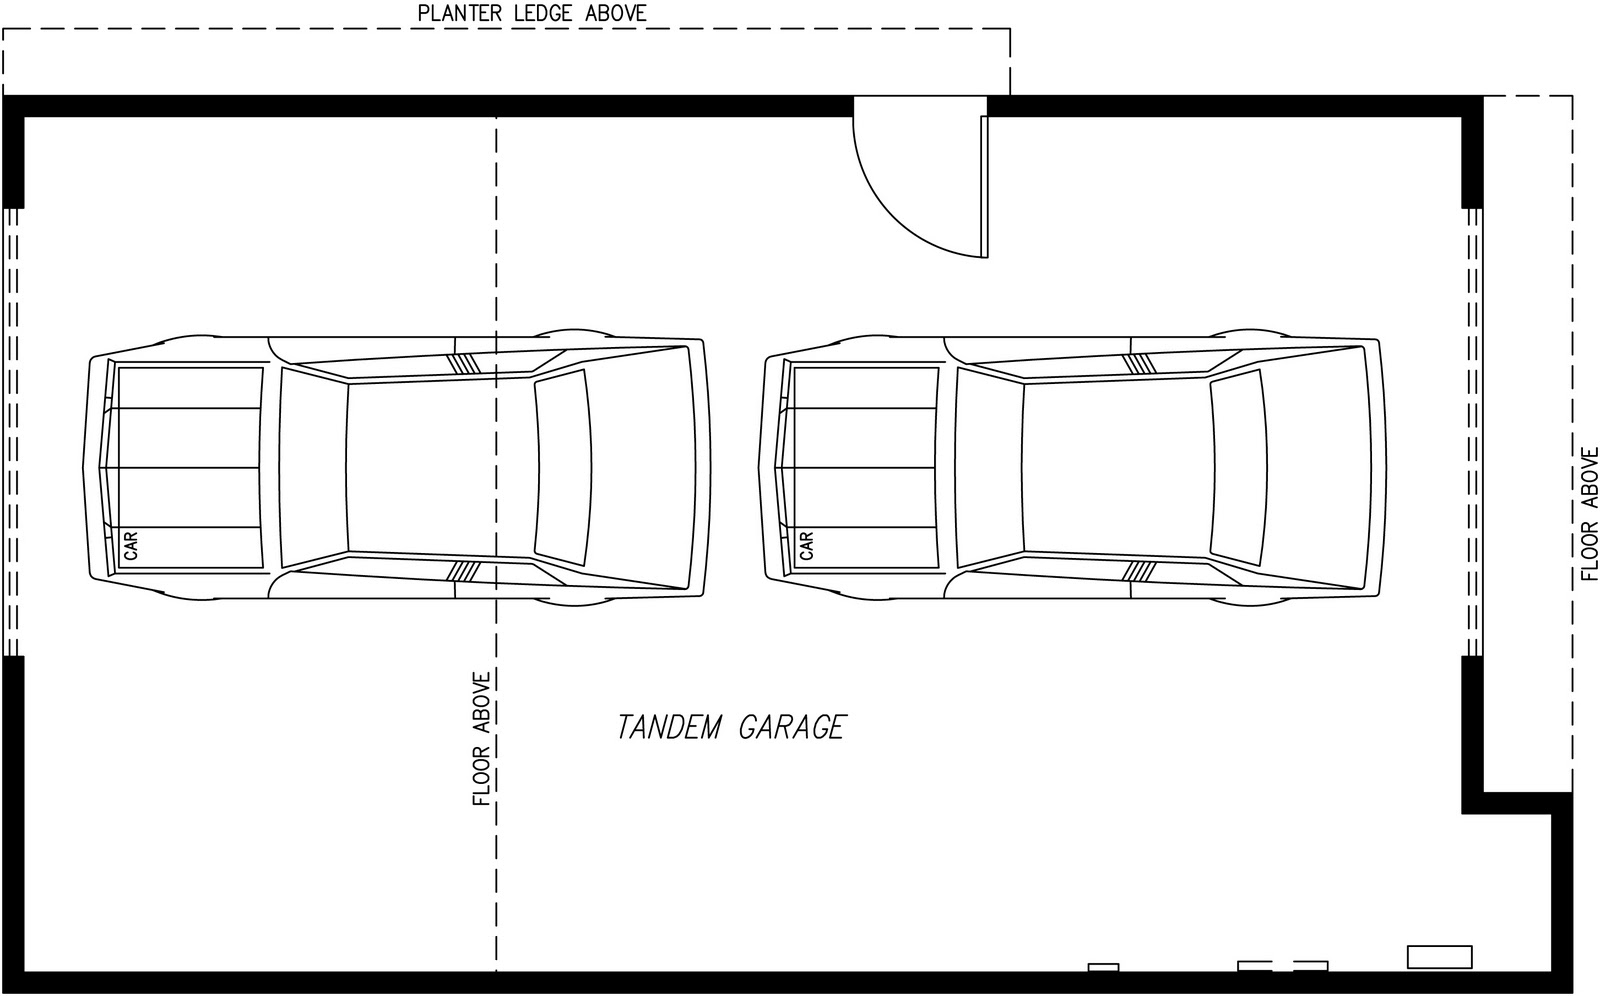 2 car tandem garage plans bing images for Tandem garage